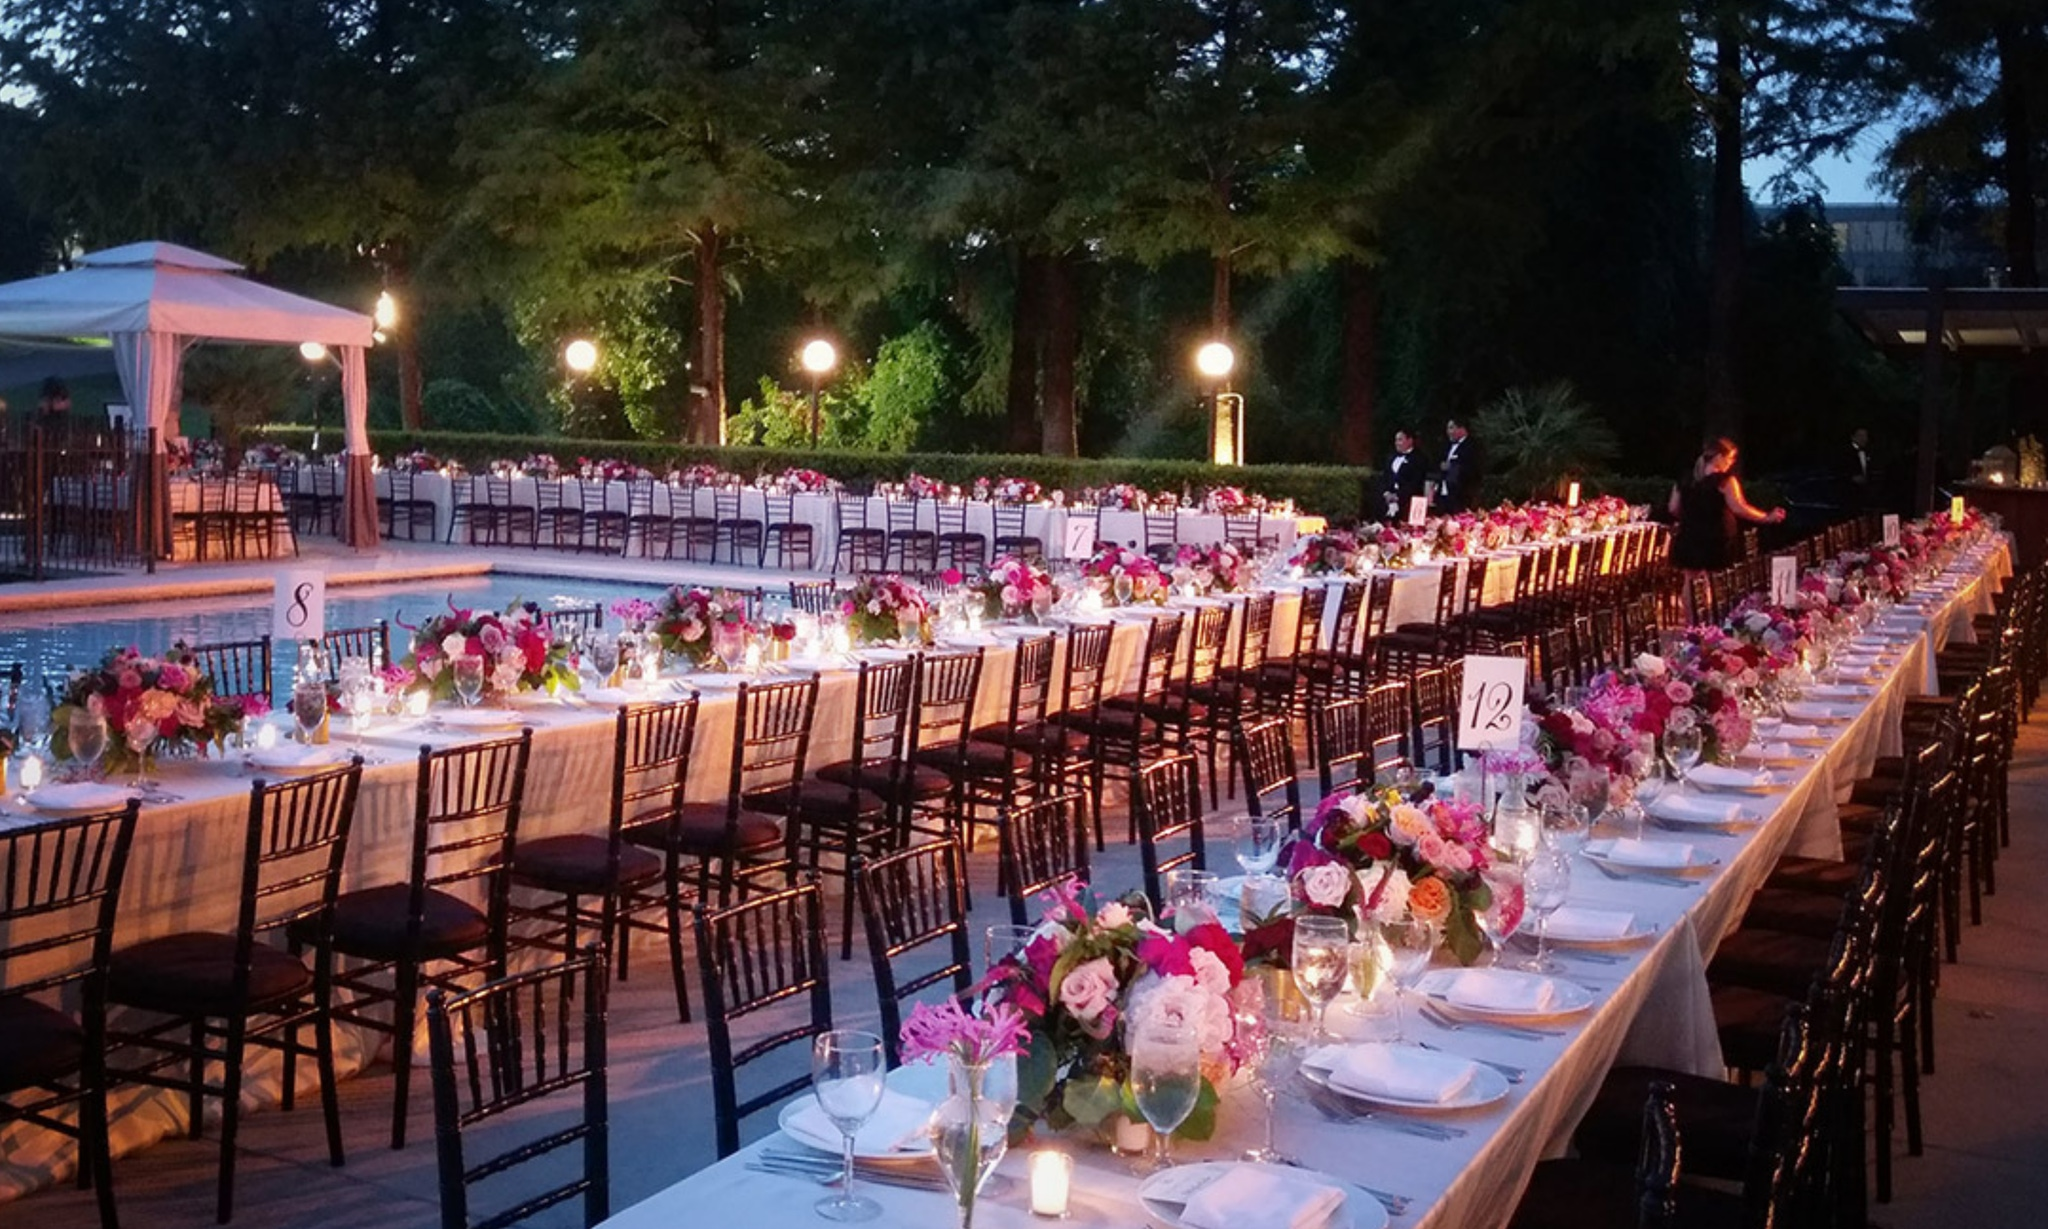 Outdoor party with pink and white florals and tables surrounding a pool